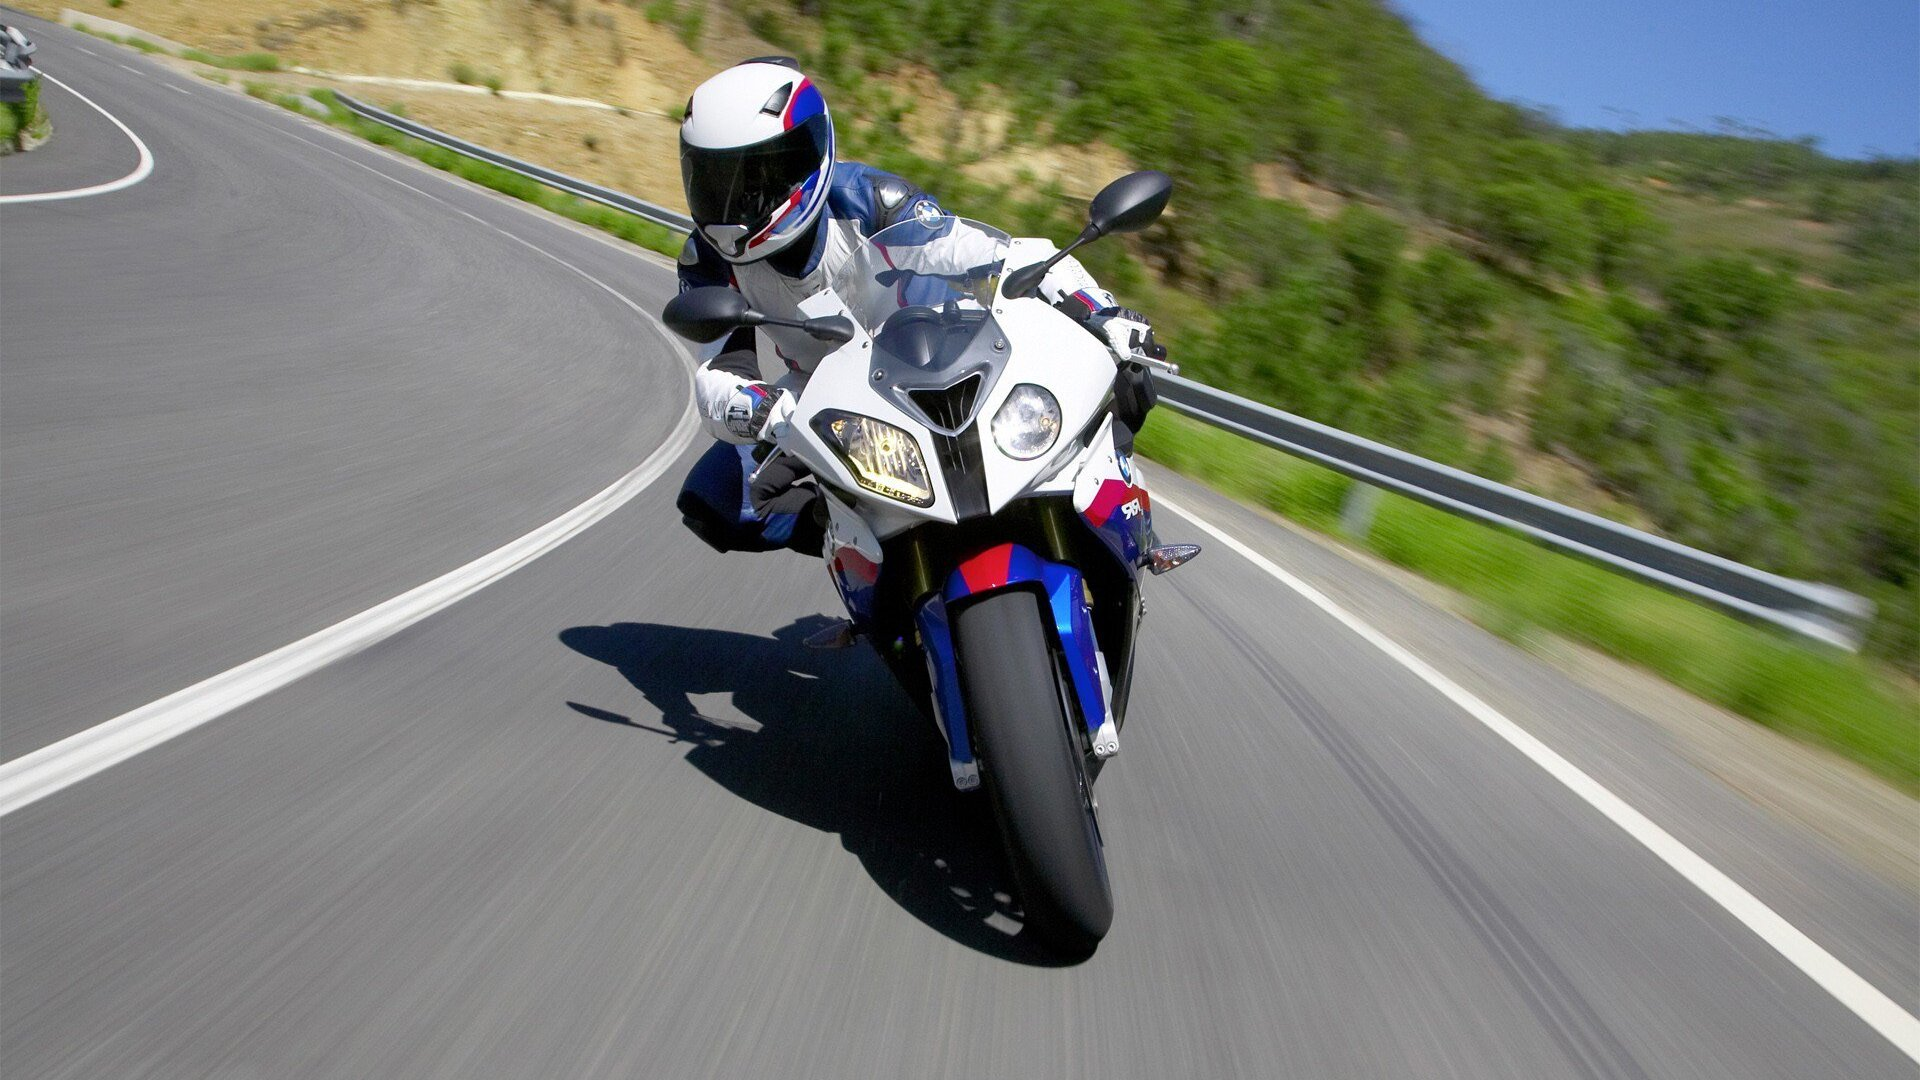 1920x1080 Bmw S1000rr Laptop Full Hd 1080p Hd 4k Wallpapers Images